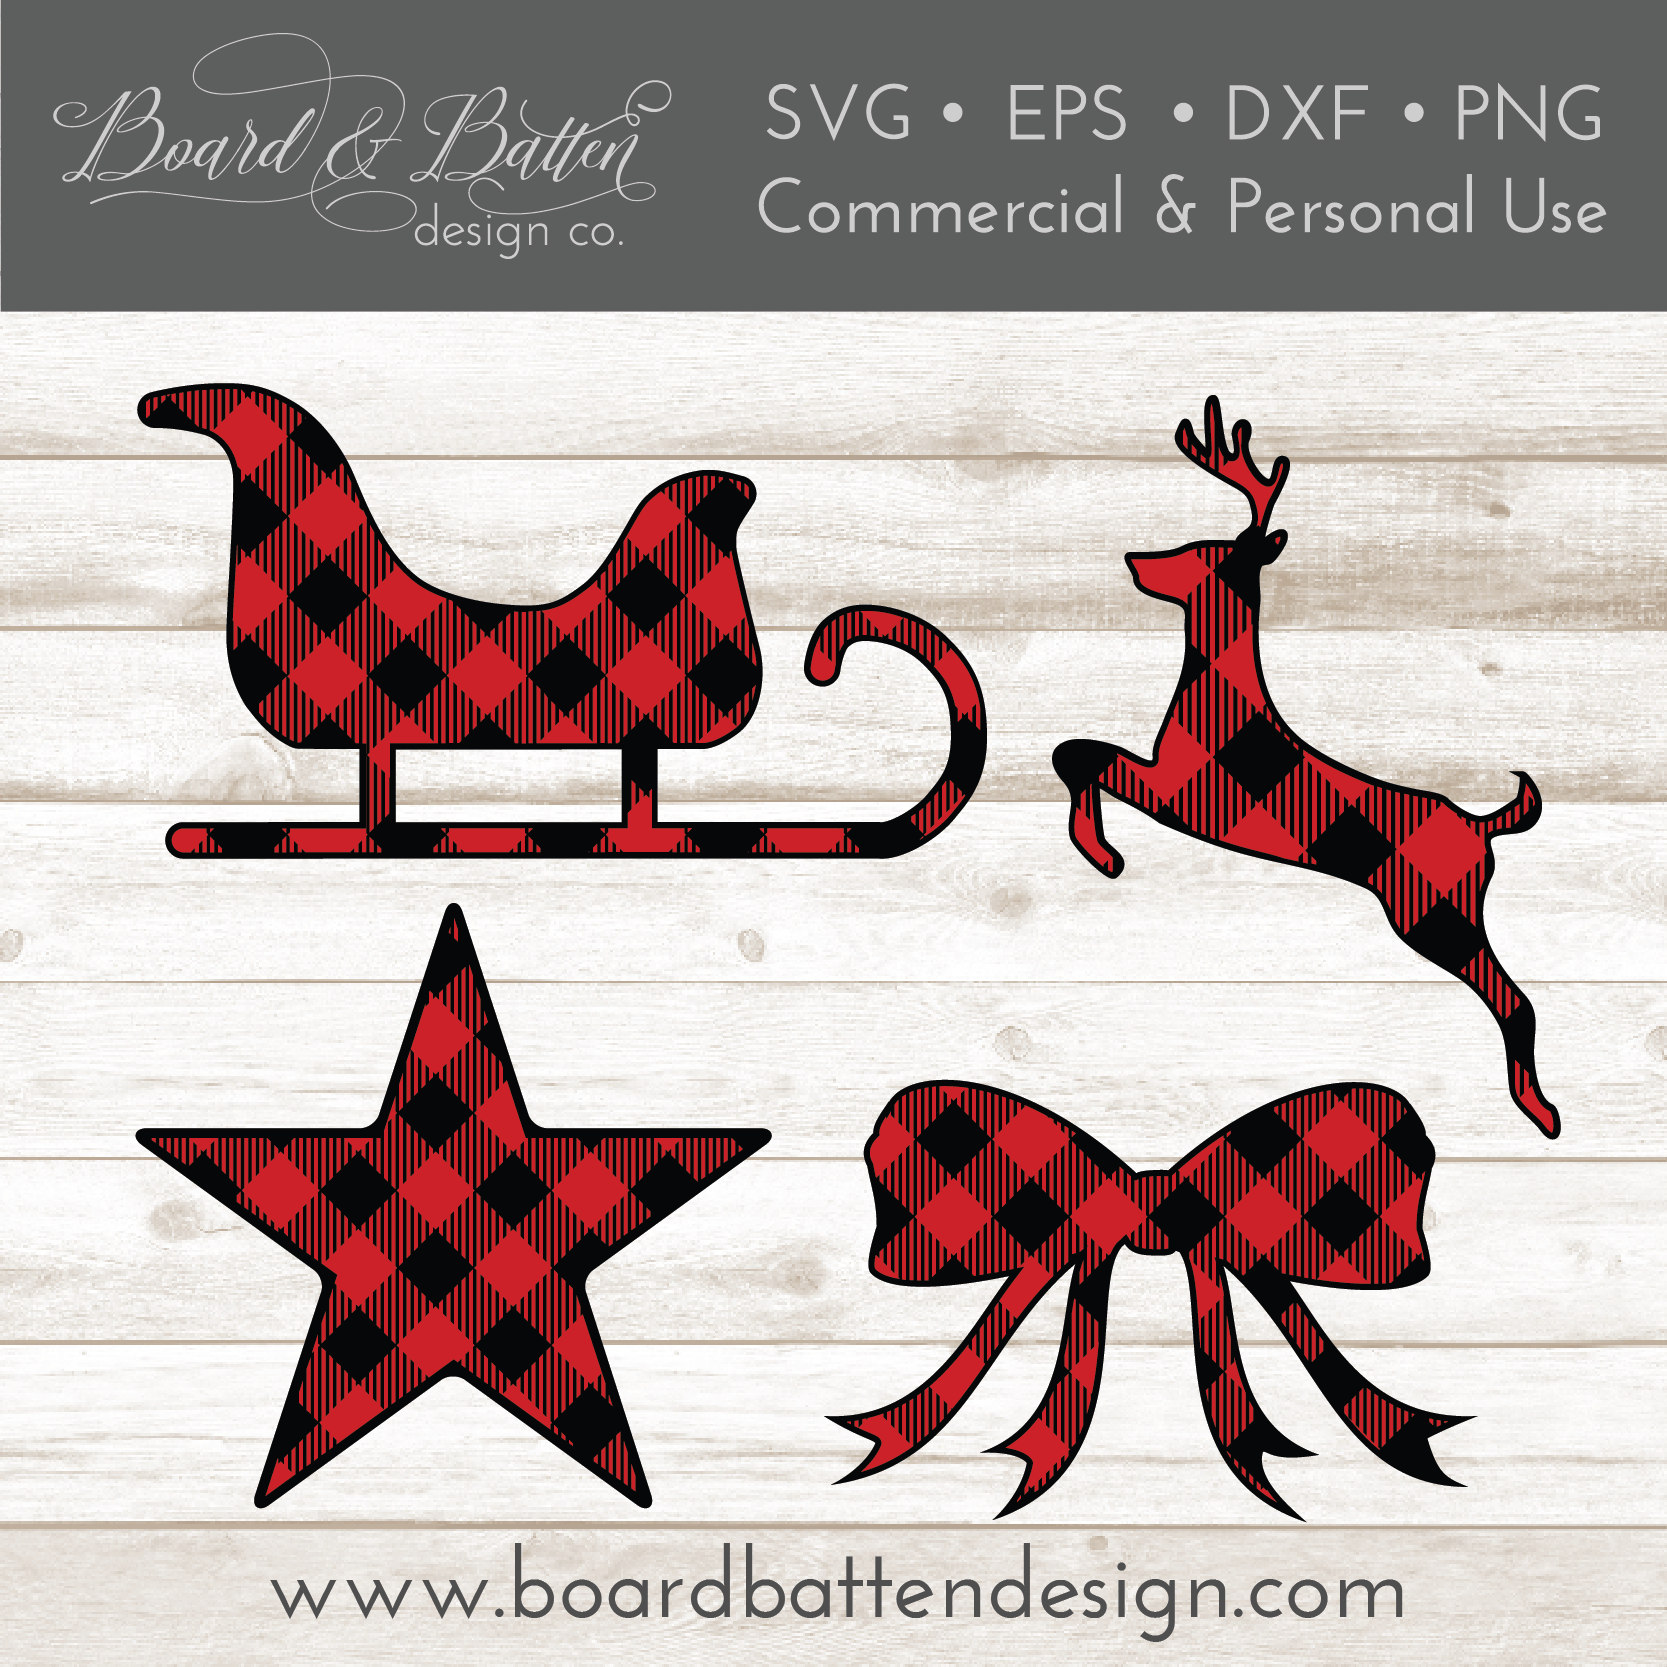 Buffalo Plaid Christmas Shapes Set 2 - Sleigh, Leaping Deer, Bow, and Star SVG File - Commercial Use SVG Files